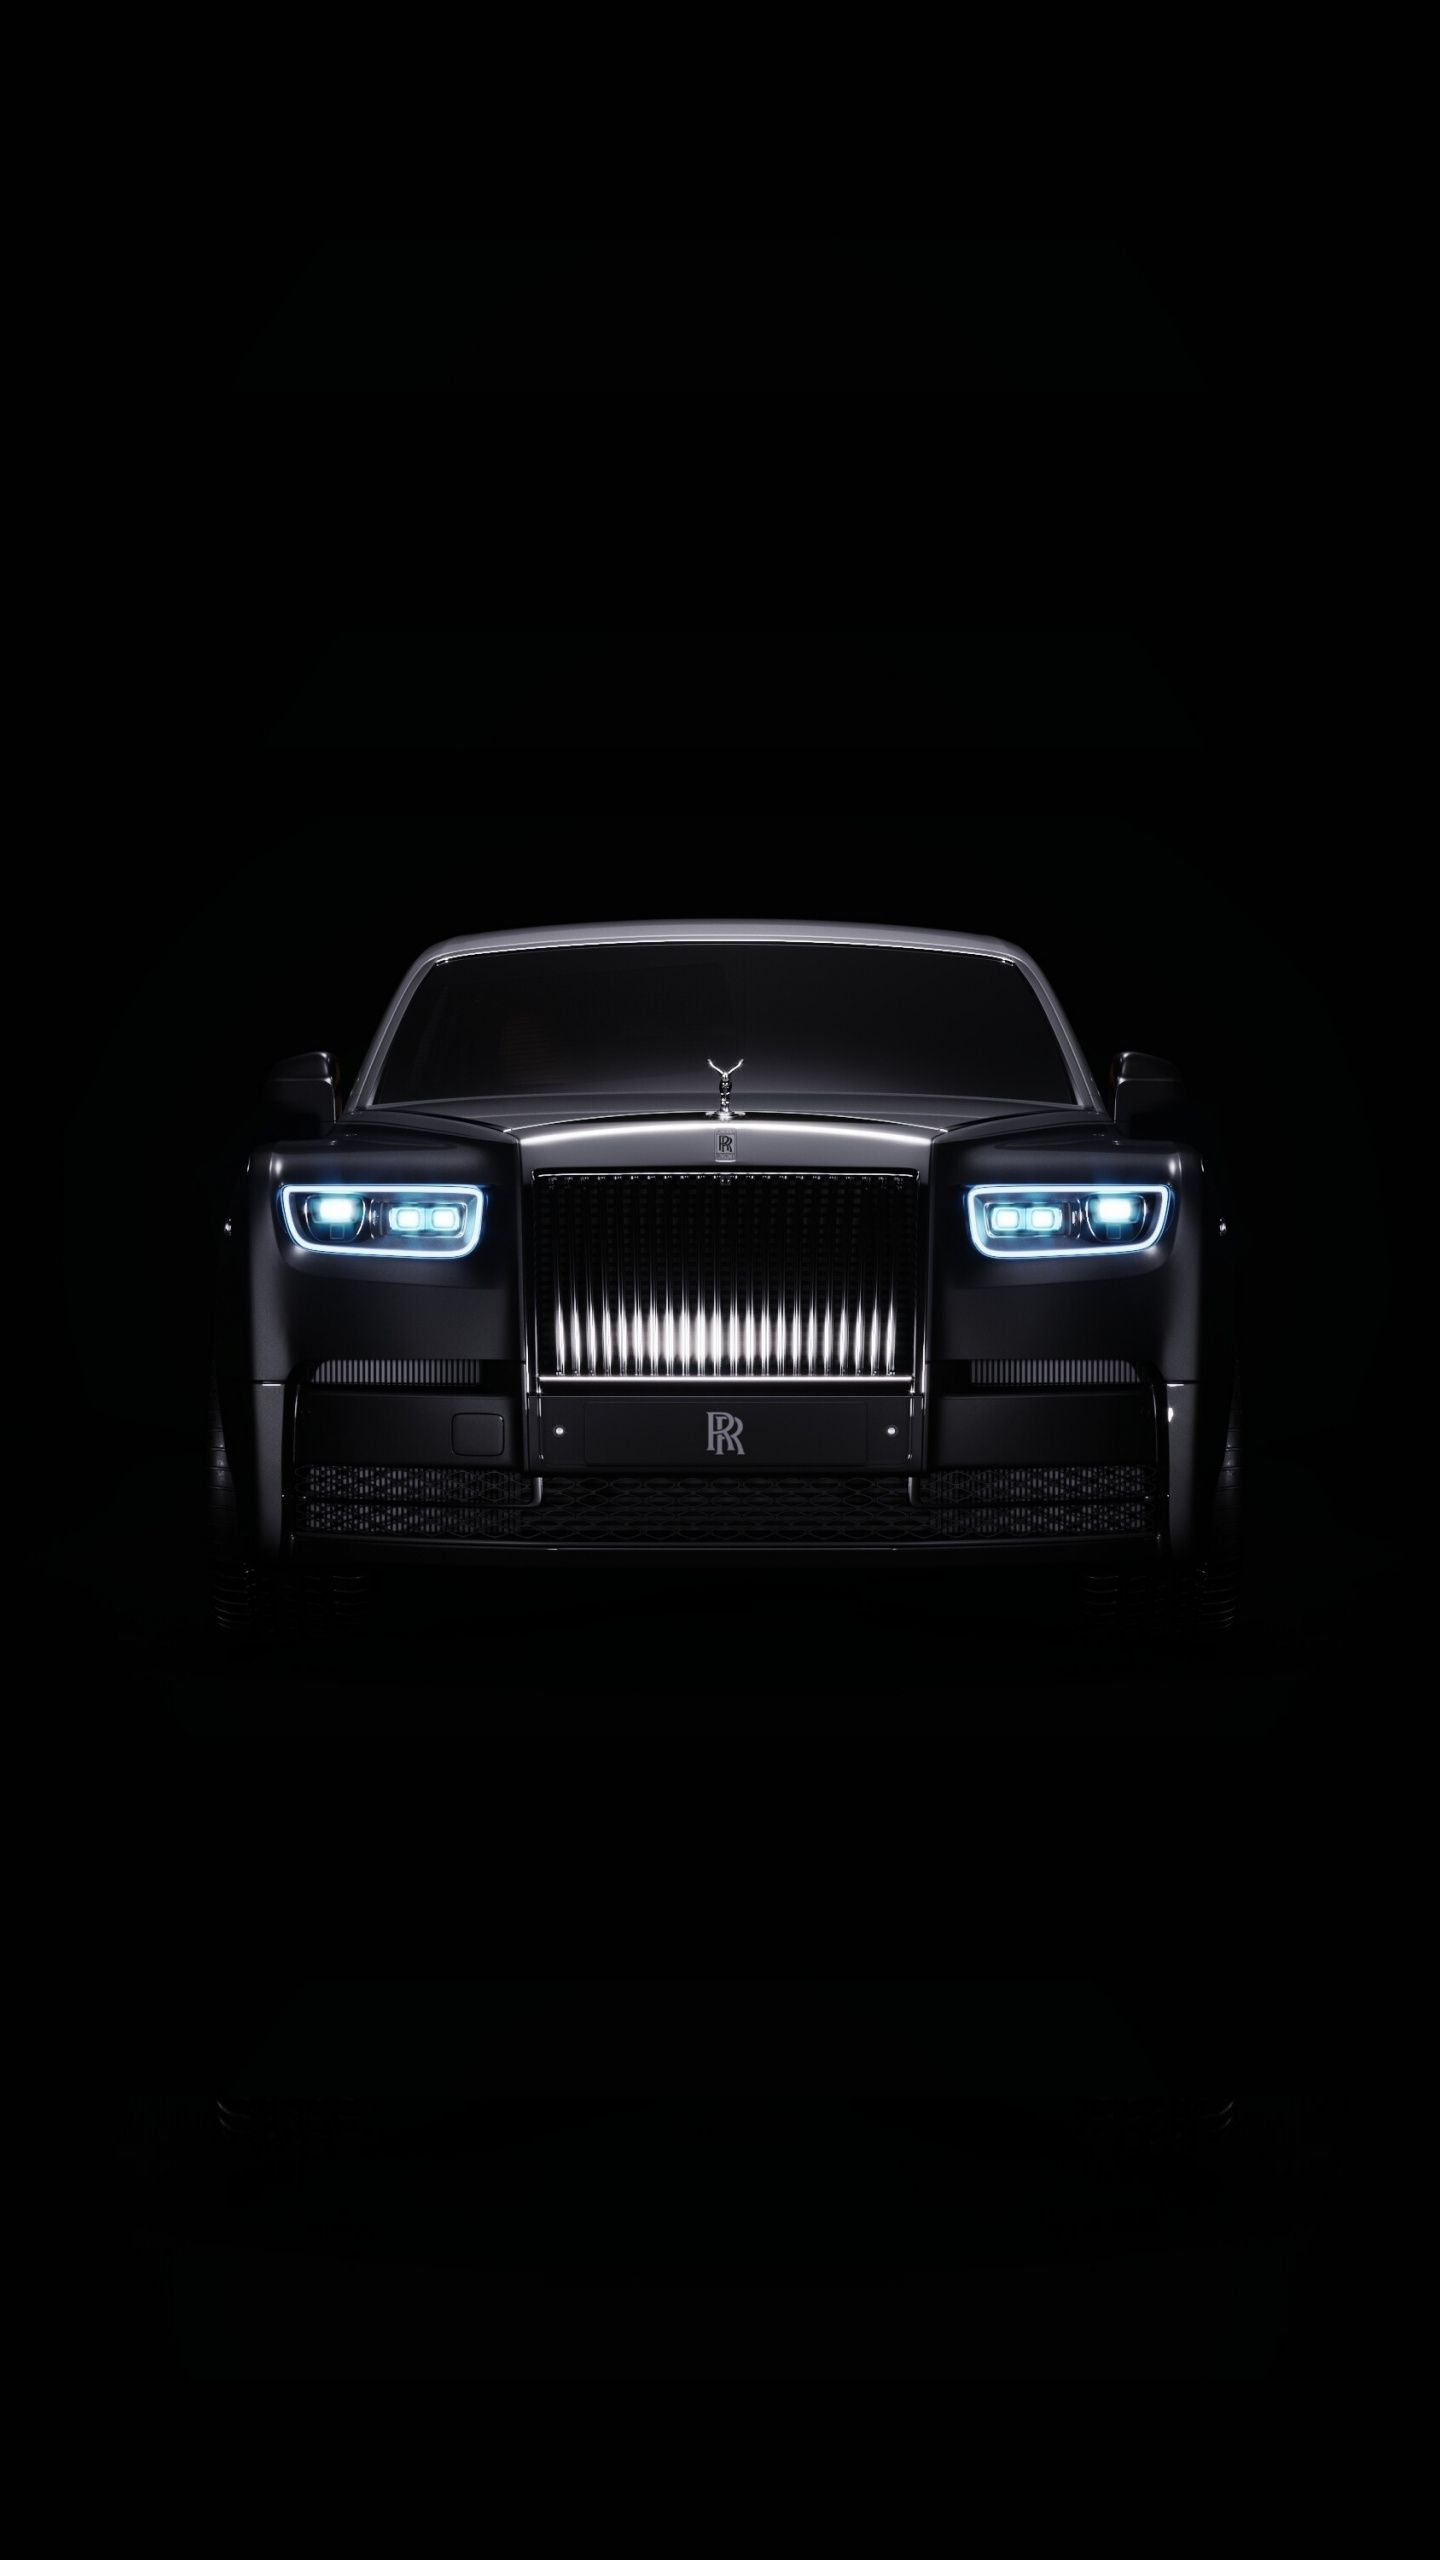 440x2560 Front Rolls Royce Phantom Portrait Wallpaper Rolls Royce Wallpaper Rolls Royce Phantom Rolls Royce